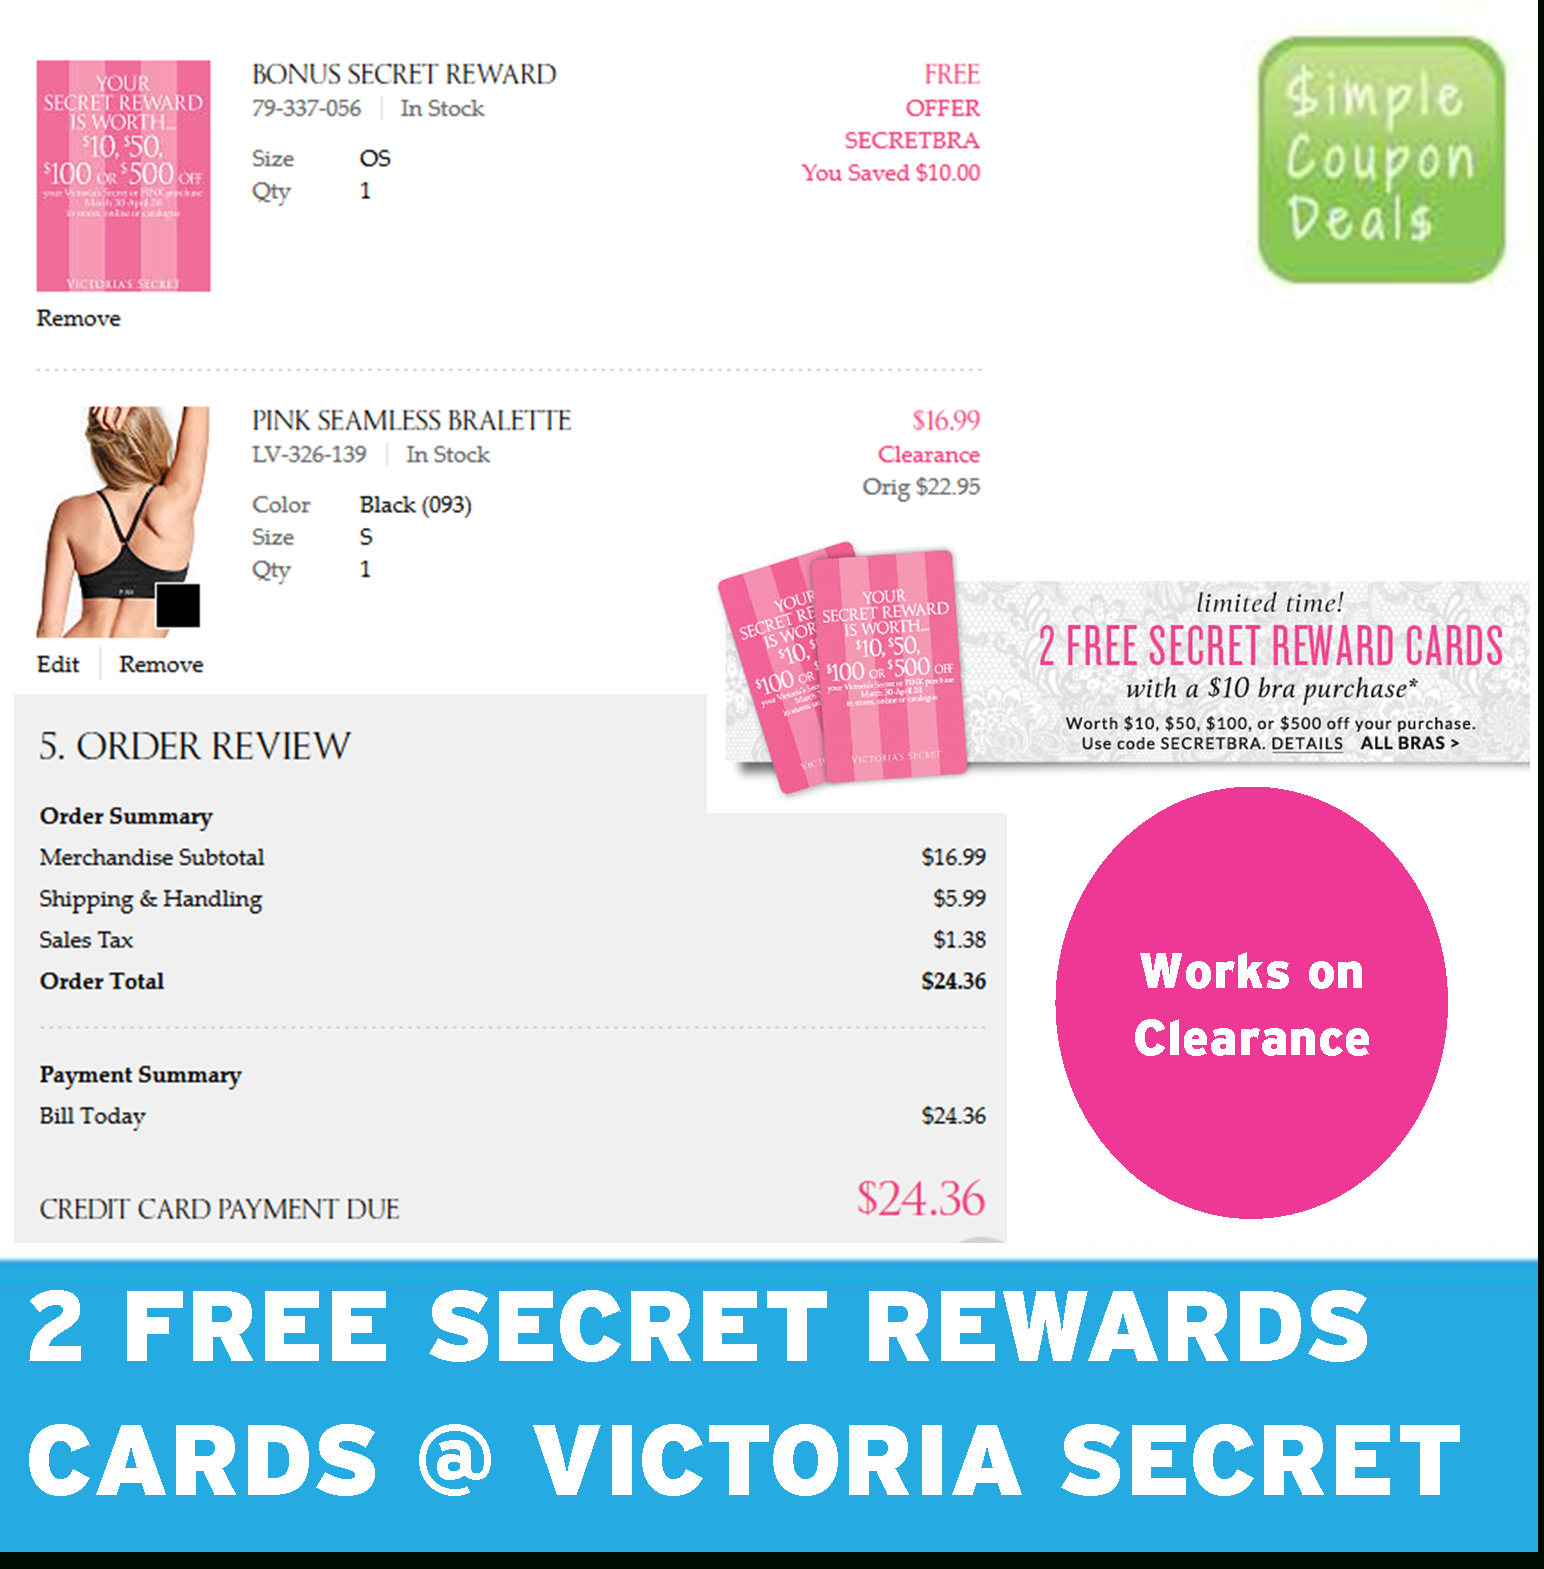 Victoria's Secret New Coupons And Deals In 2018 - Free Printable Coupons Victoria Secret